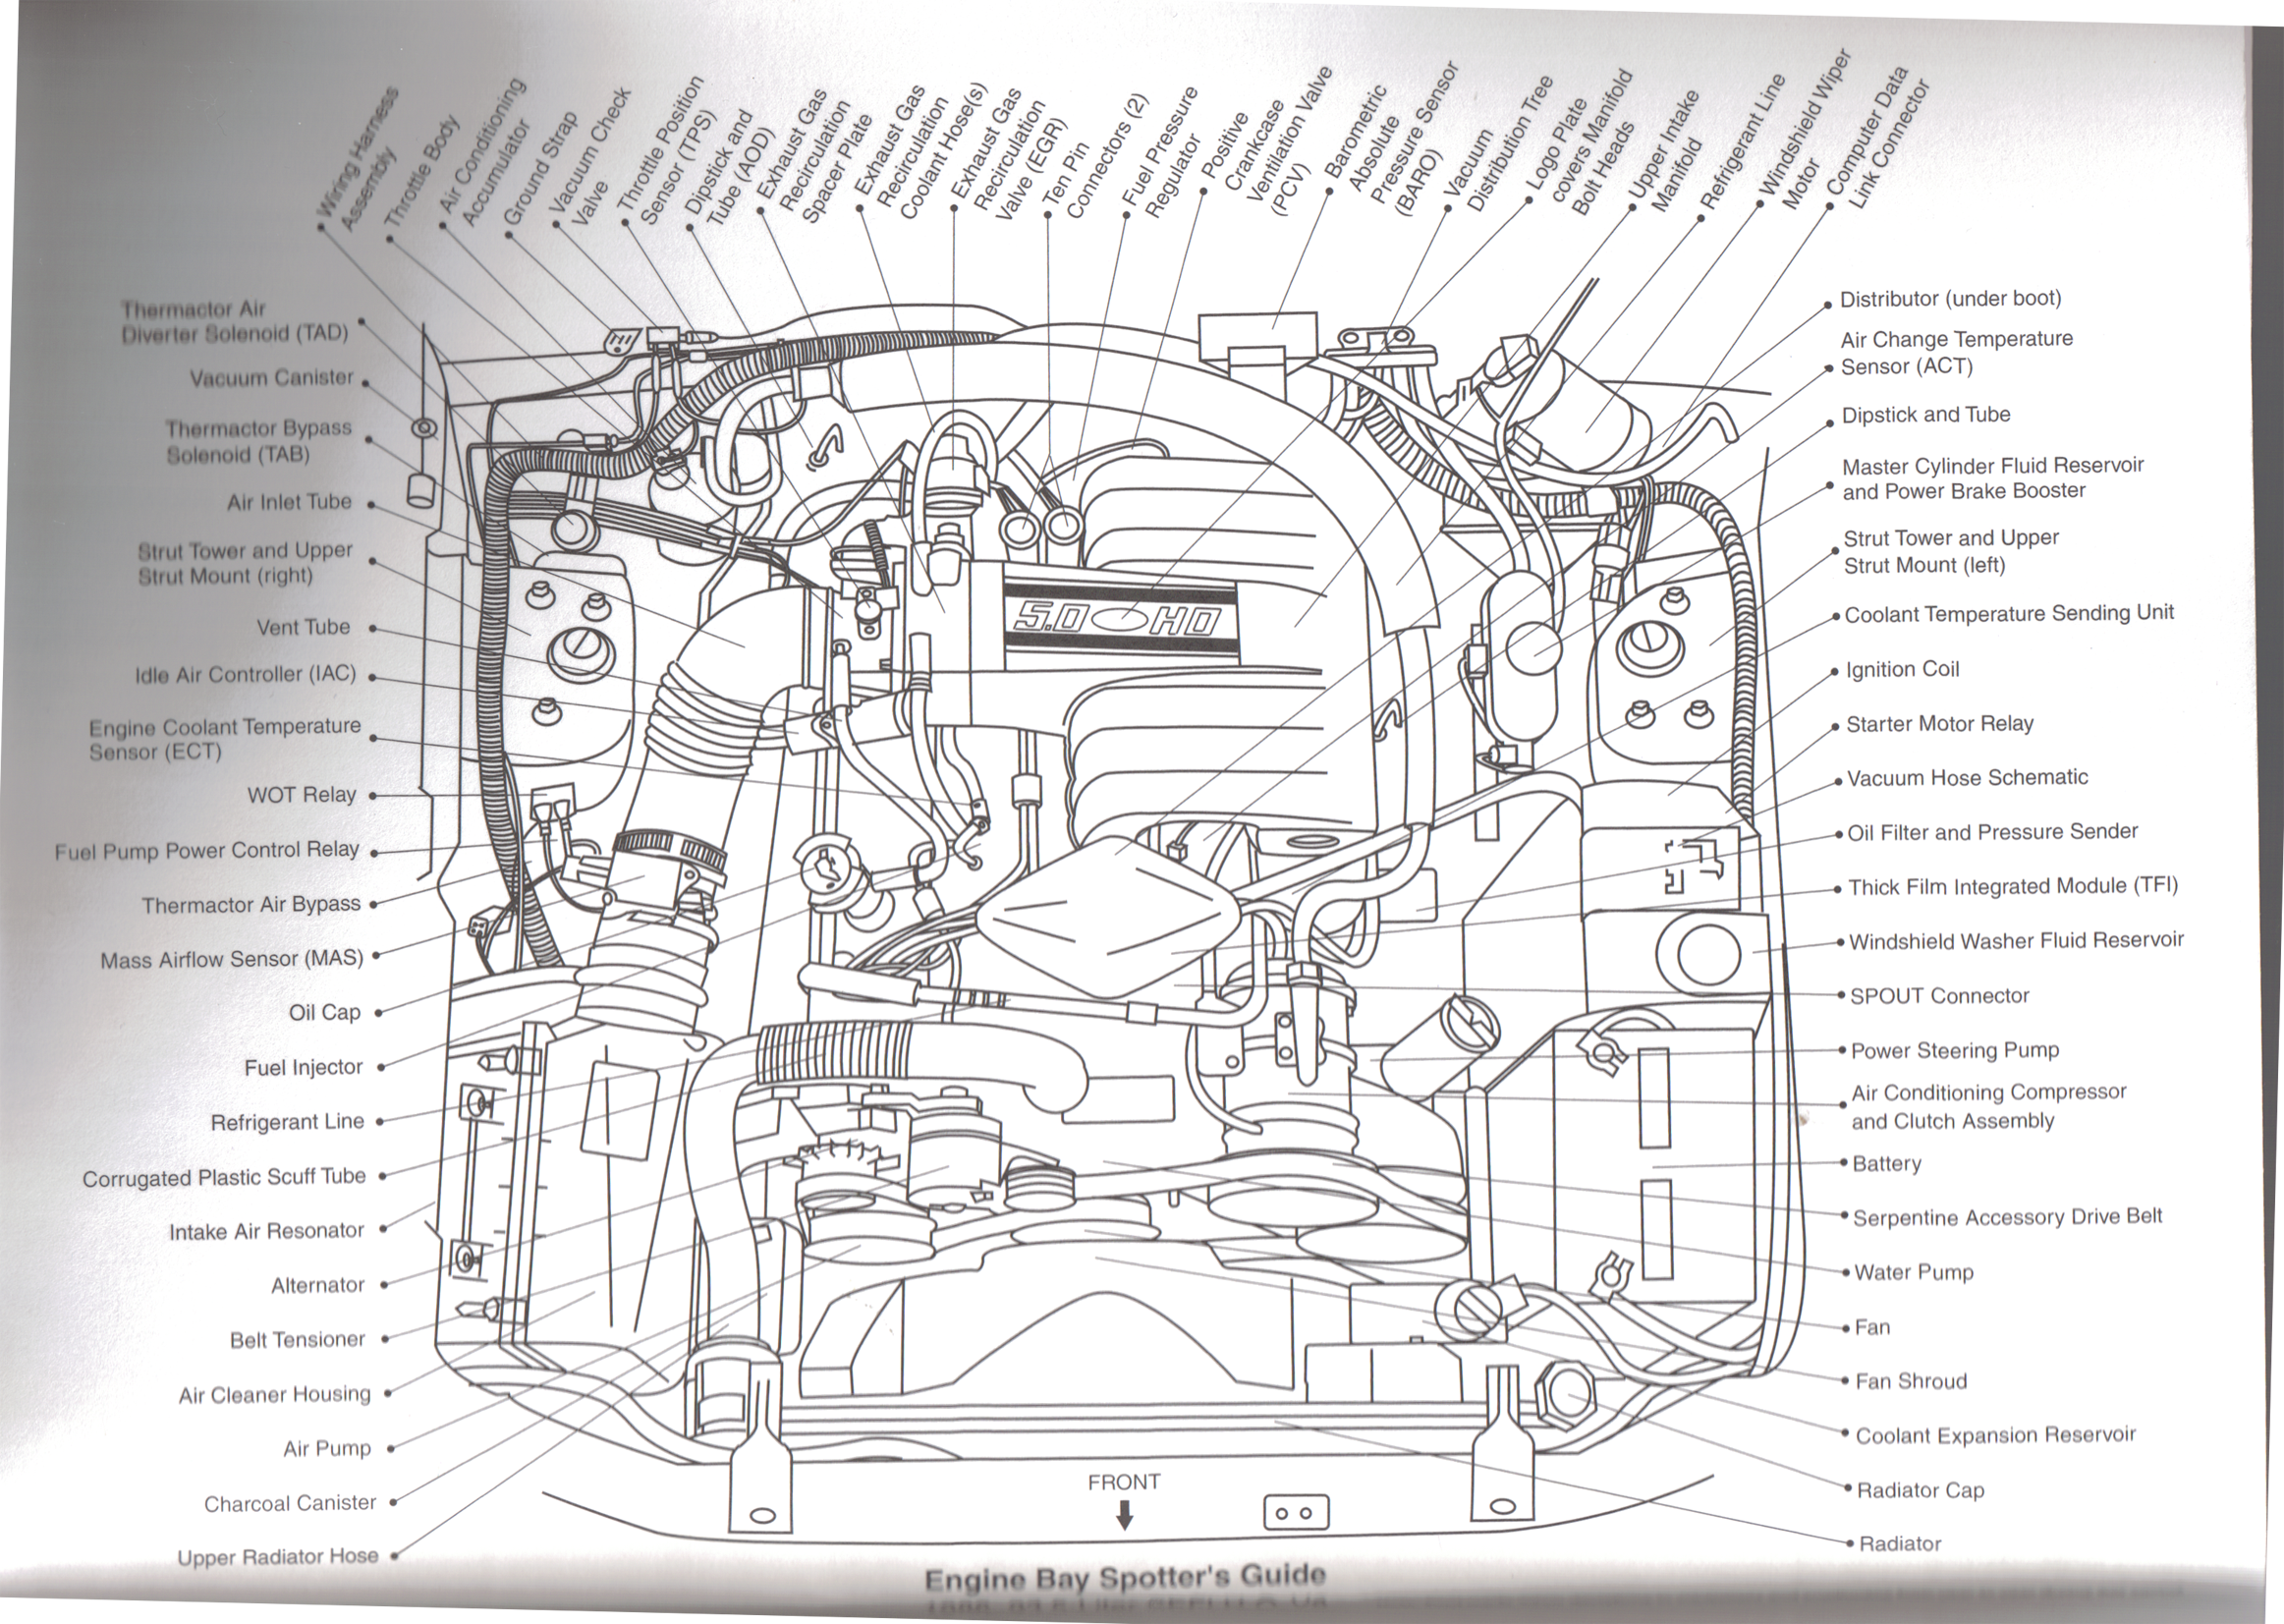 v8 engine diagram 1 efievudf timmarshall info \u2022